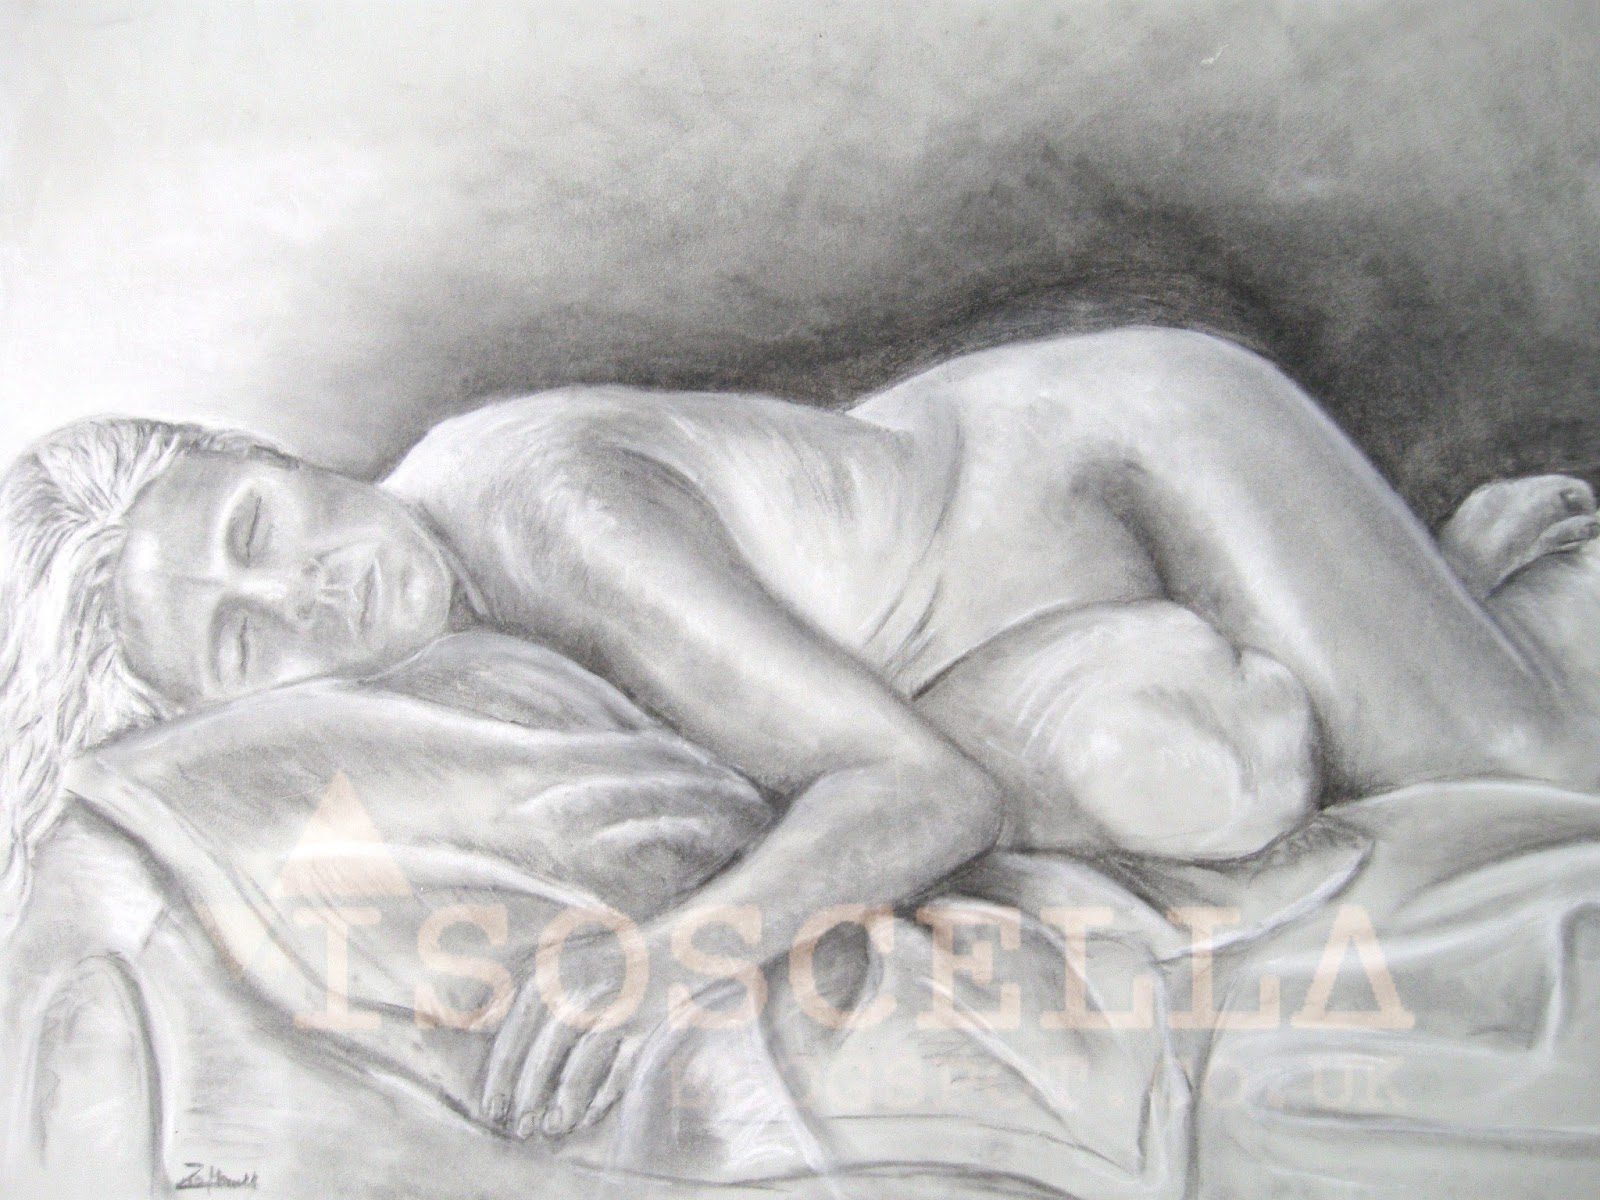 Nude women resting life drawing charcoal chalk